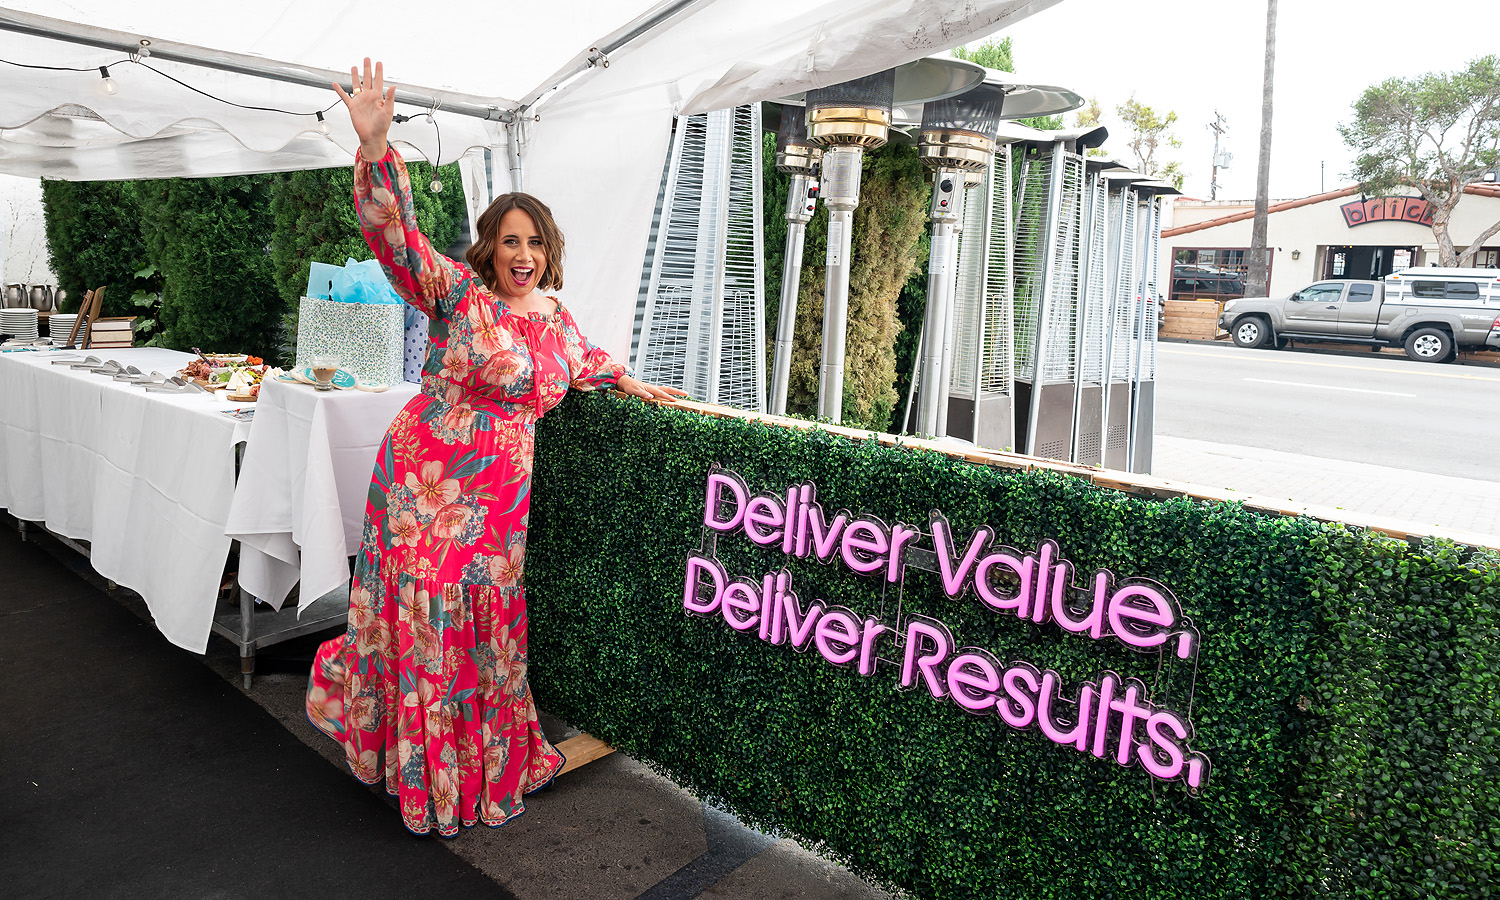 Bree Hughes Stands in front of a Deliver Value Deliver Results sign in San Clemente CA 2021